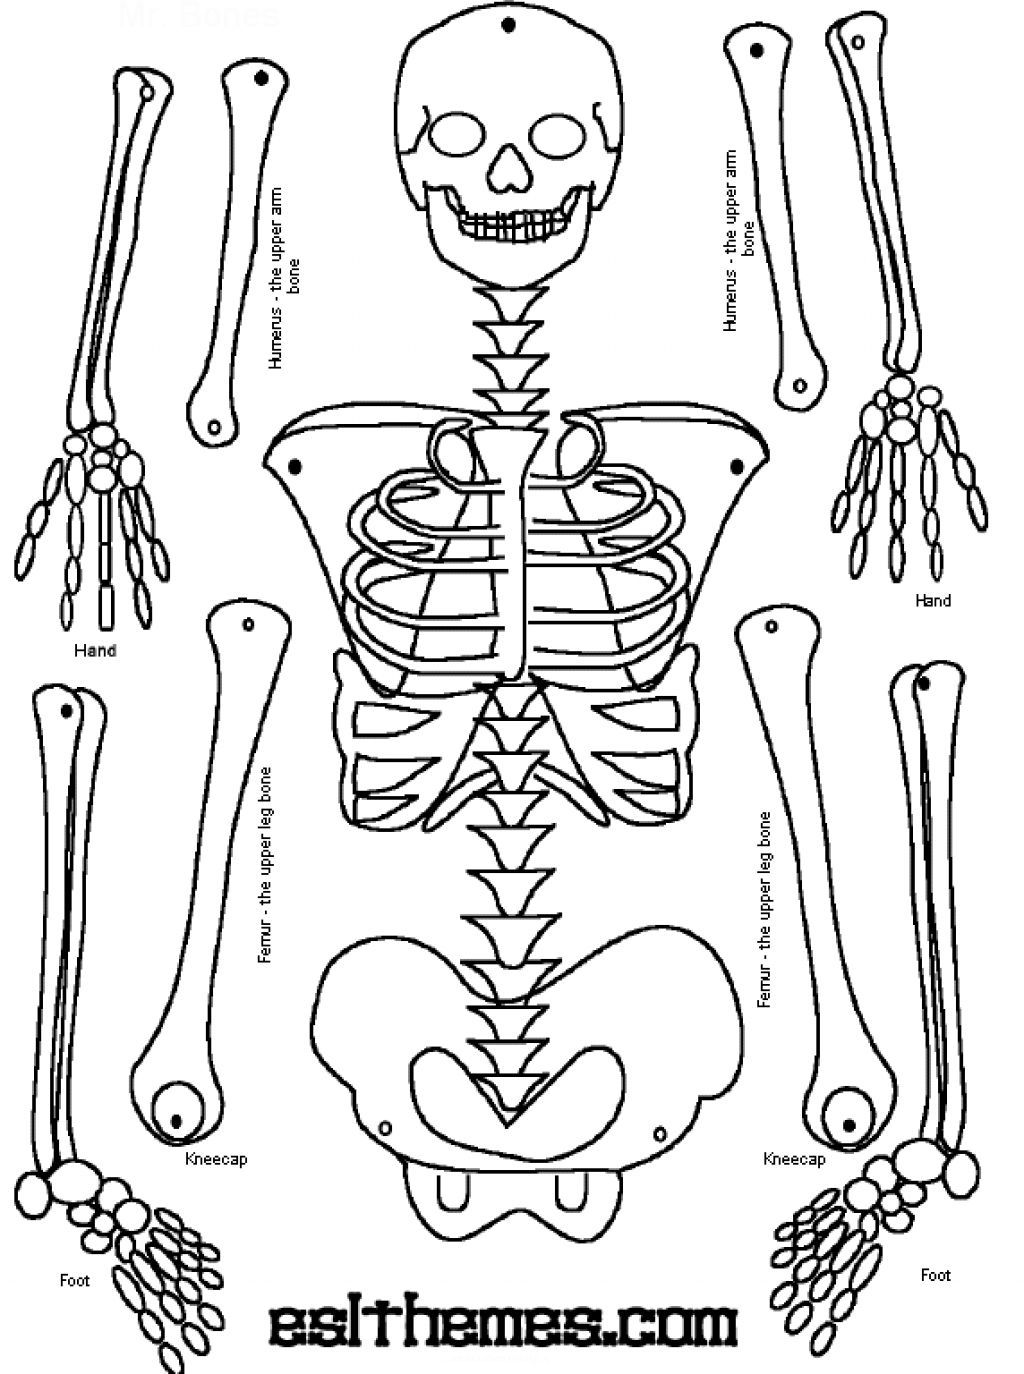 Skeleton Puzzle Printable